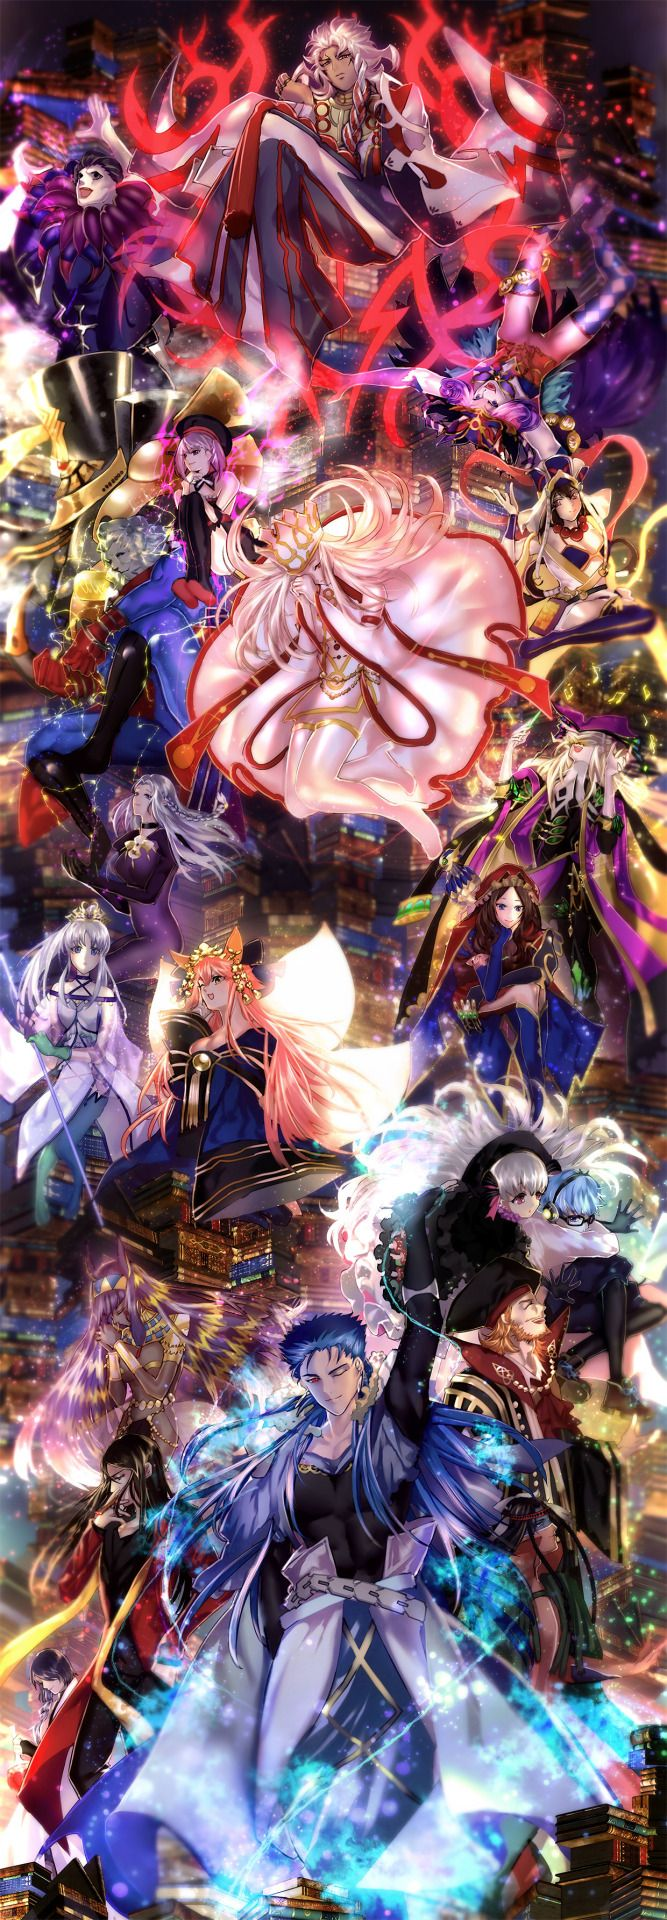 Caster - Fate/Prototype - Fate/Prototype Fragments of Blue and Silver - Fate/Labyrinth - Fate/Zero - Fate/Stay Night - Unlimited Blade Works - Heaven's Feel - Fate/Hollow Ataraxia - Fate/Strange Fake - Fate/Extra - Fate/Extra CCC - Fate/Apocrypha - Fate/Grand Order